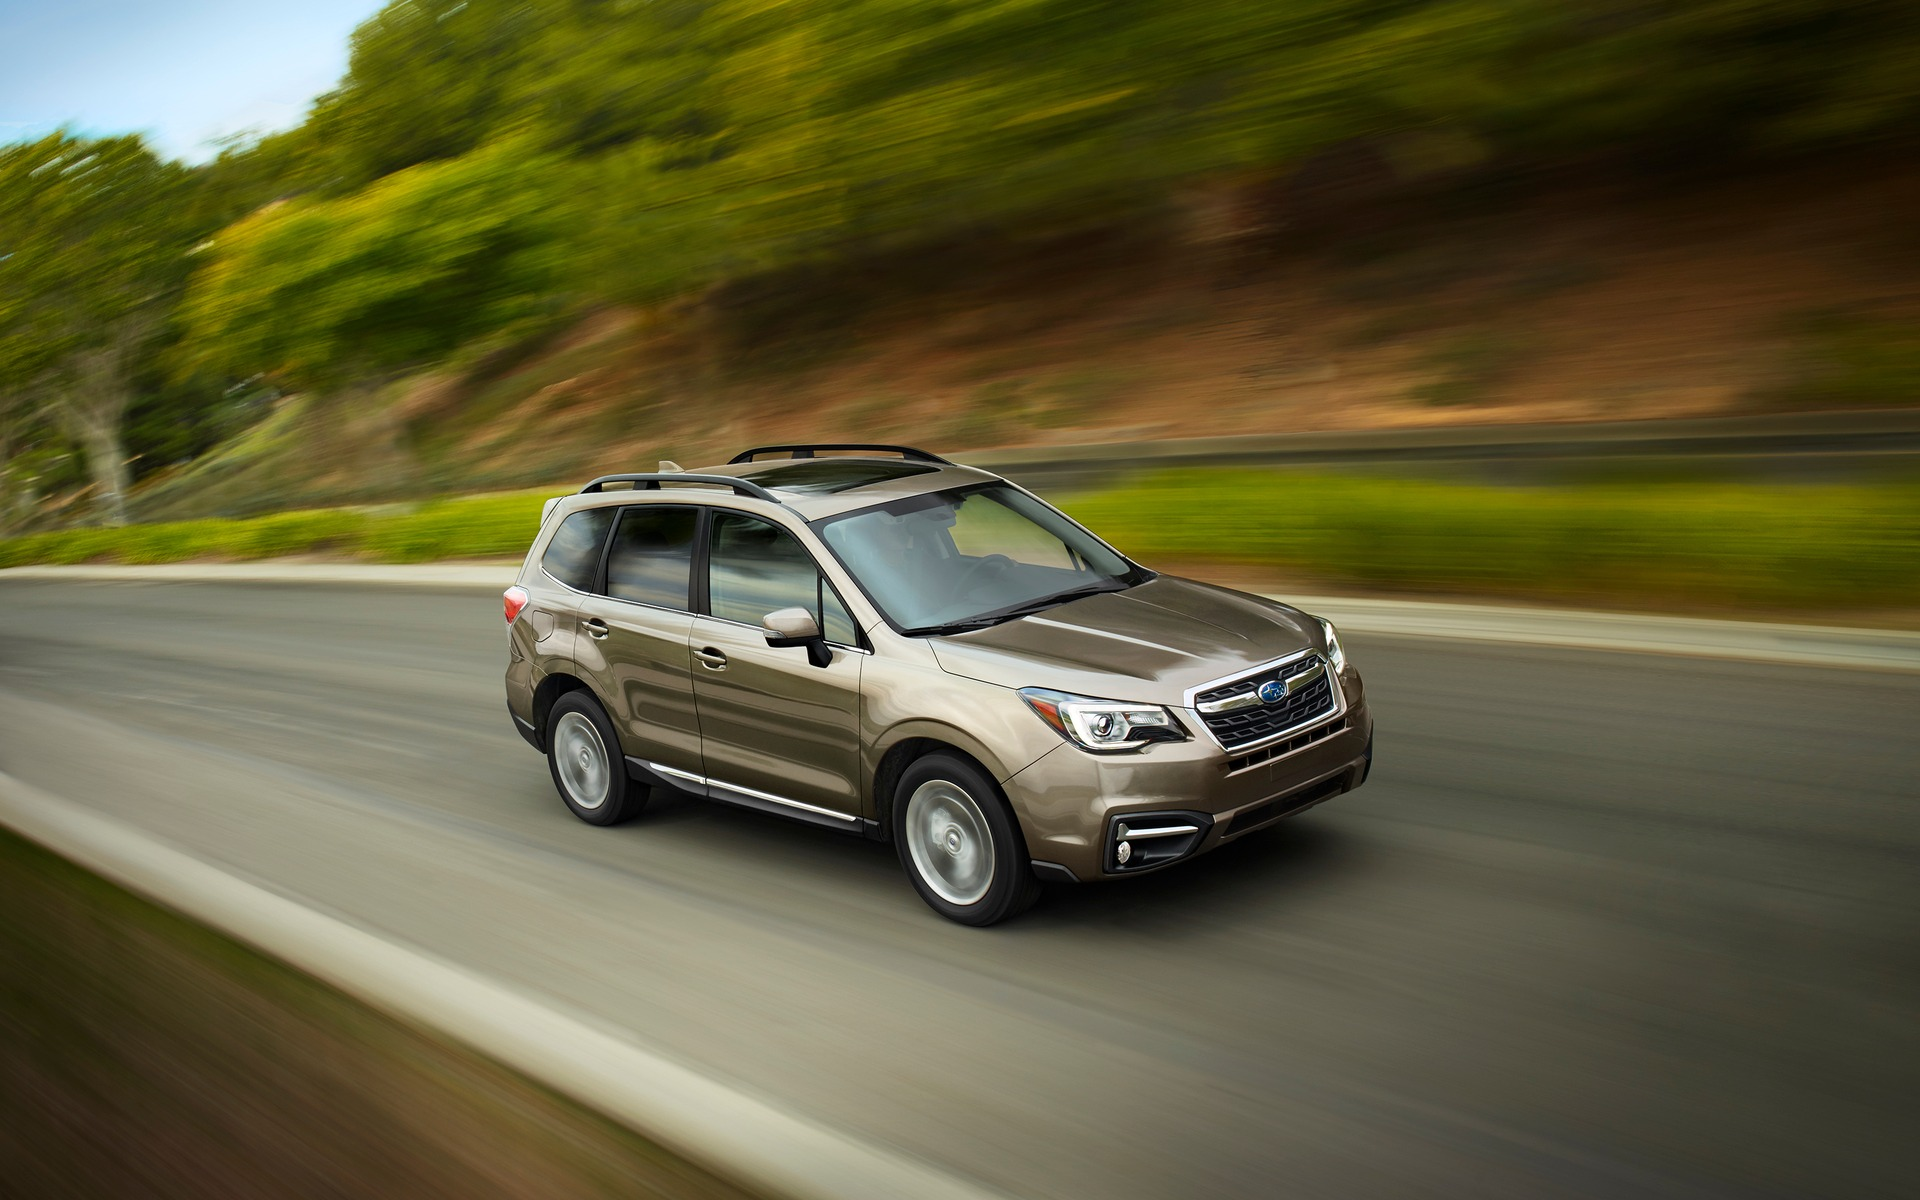 The new 2017 Subaru Forester